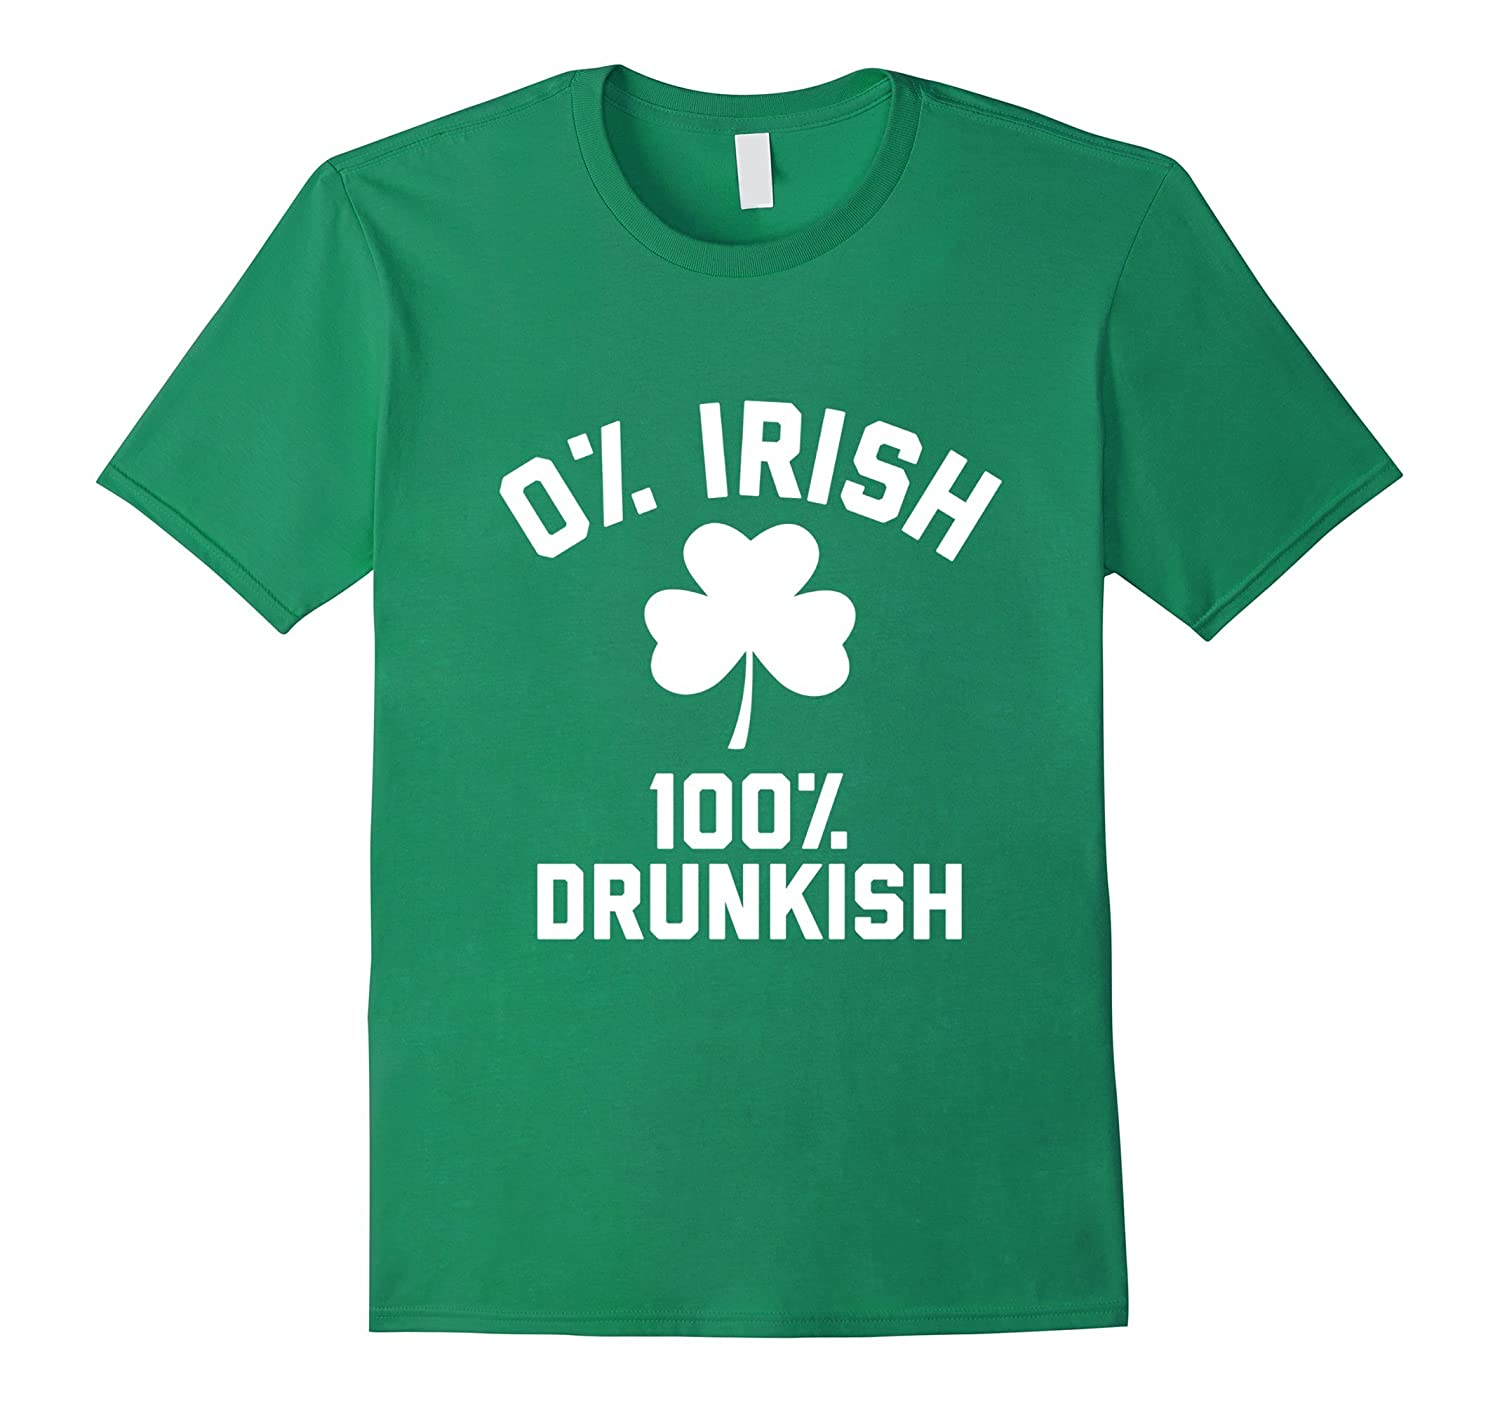 0 IRISH 100 DRUNKISH Saint Patricks Day Tee Shirt-TD